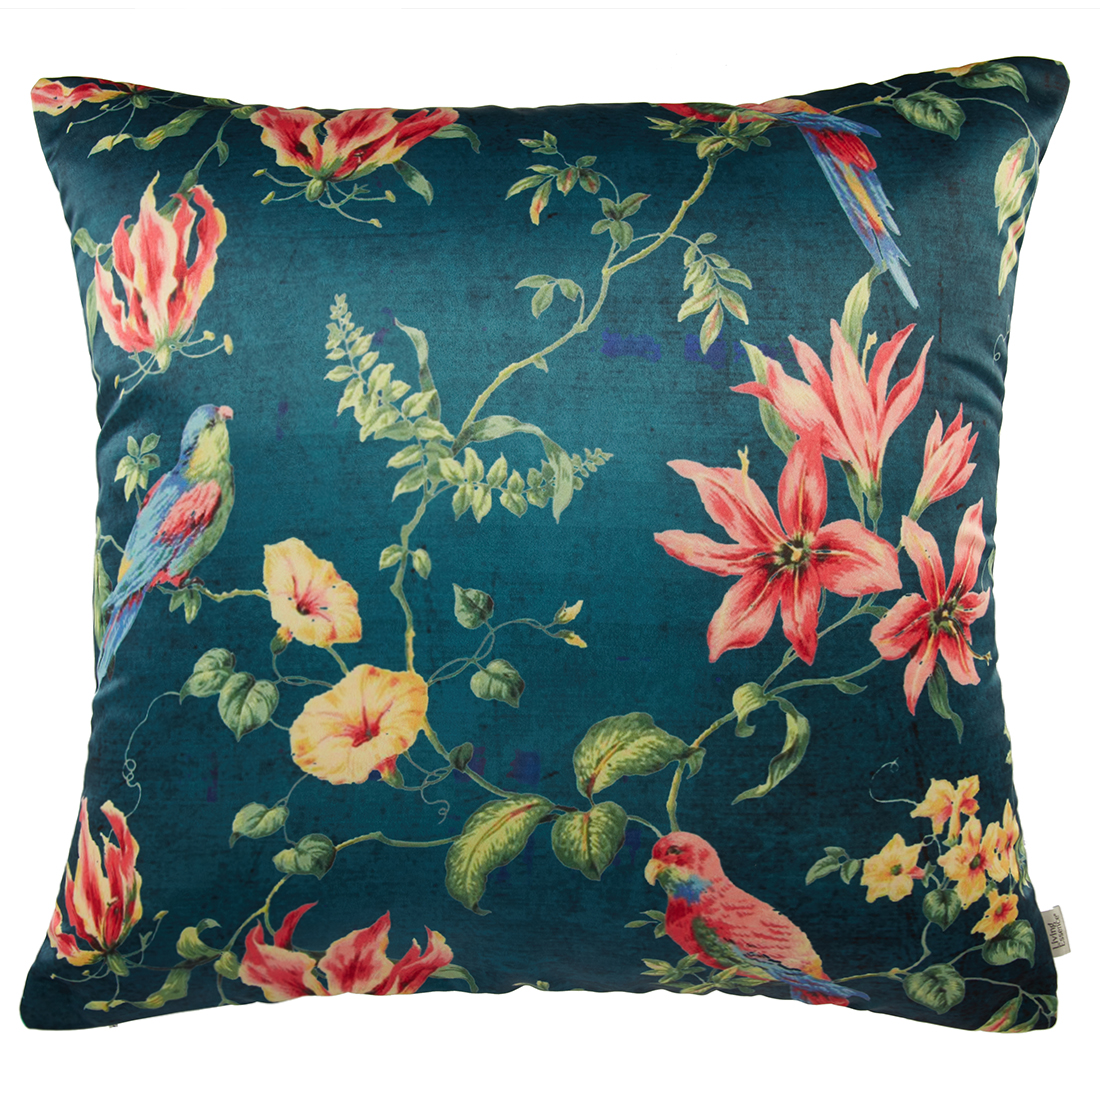 Digital Cushion Cover Vintage Flora Teal Cushion Covers in Poly Satin Colour by Living Essence